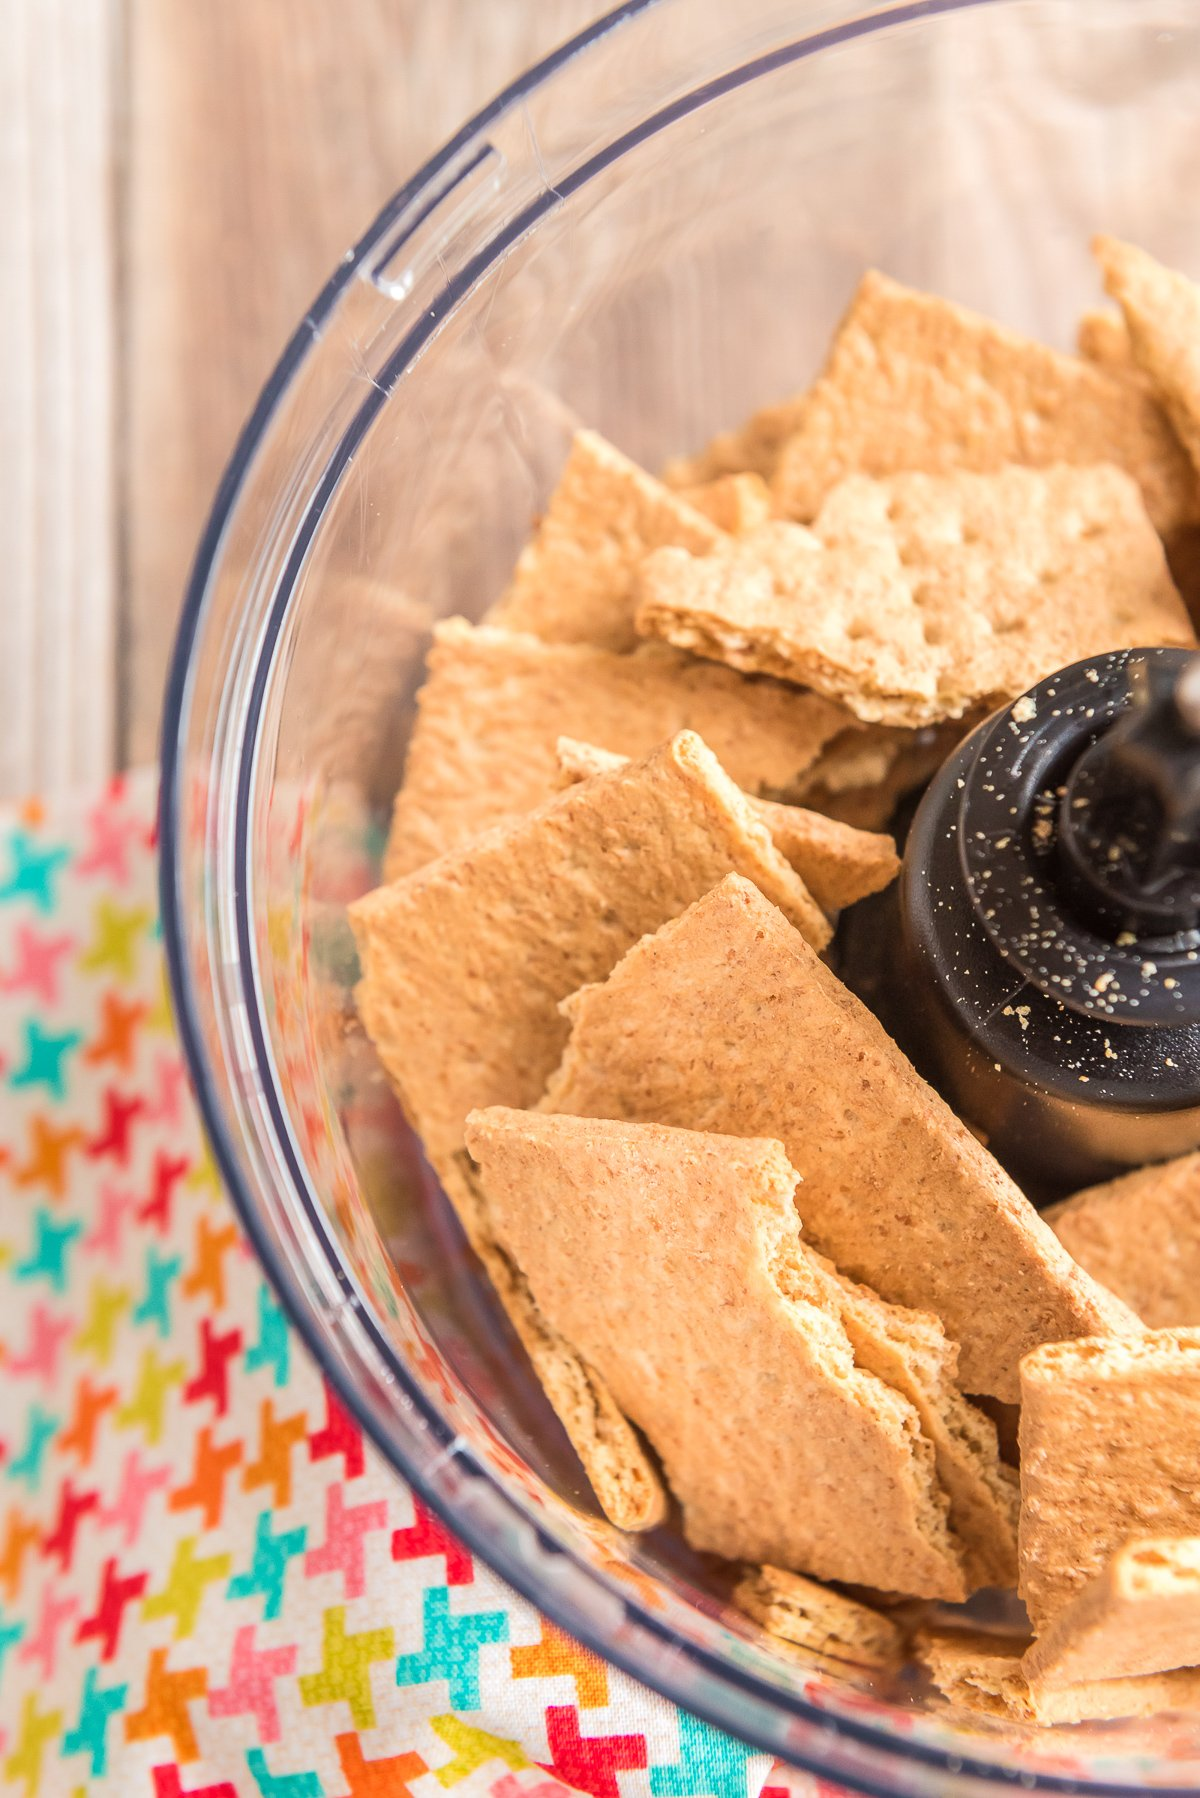 Graham crackers in a food processor getting ready to be blended.